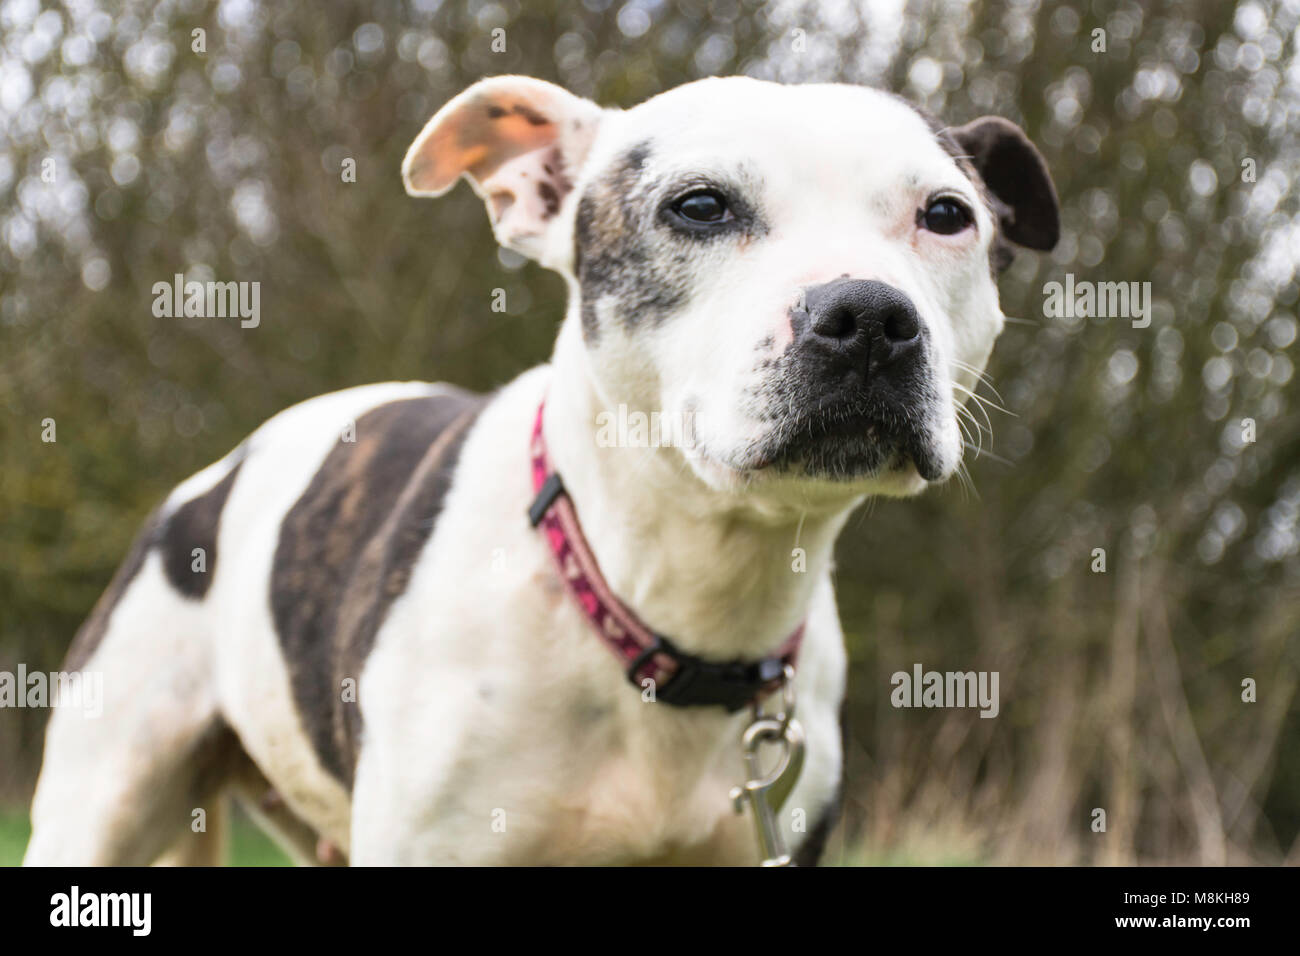 Staffordshire bull terrier looking at camera - Stock Image